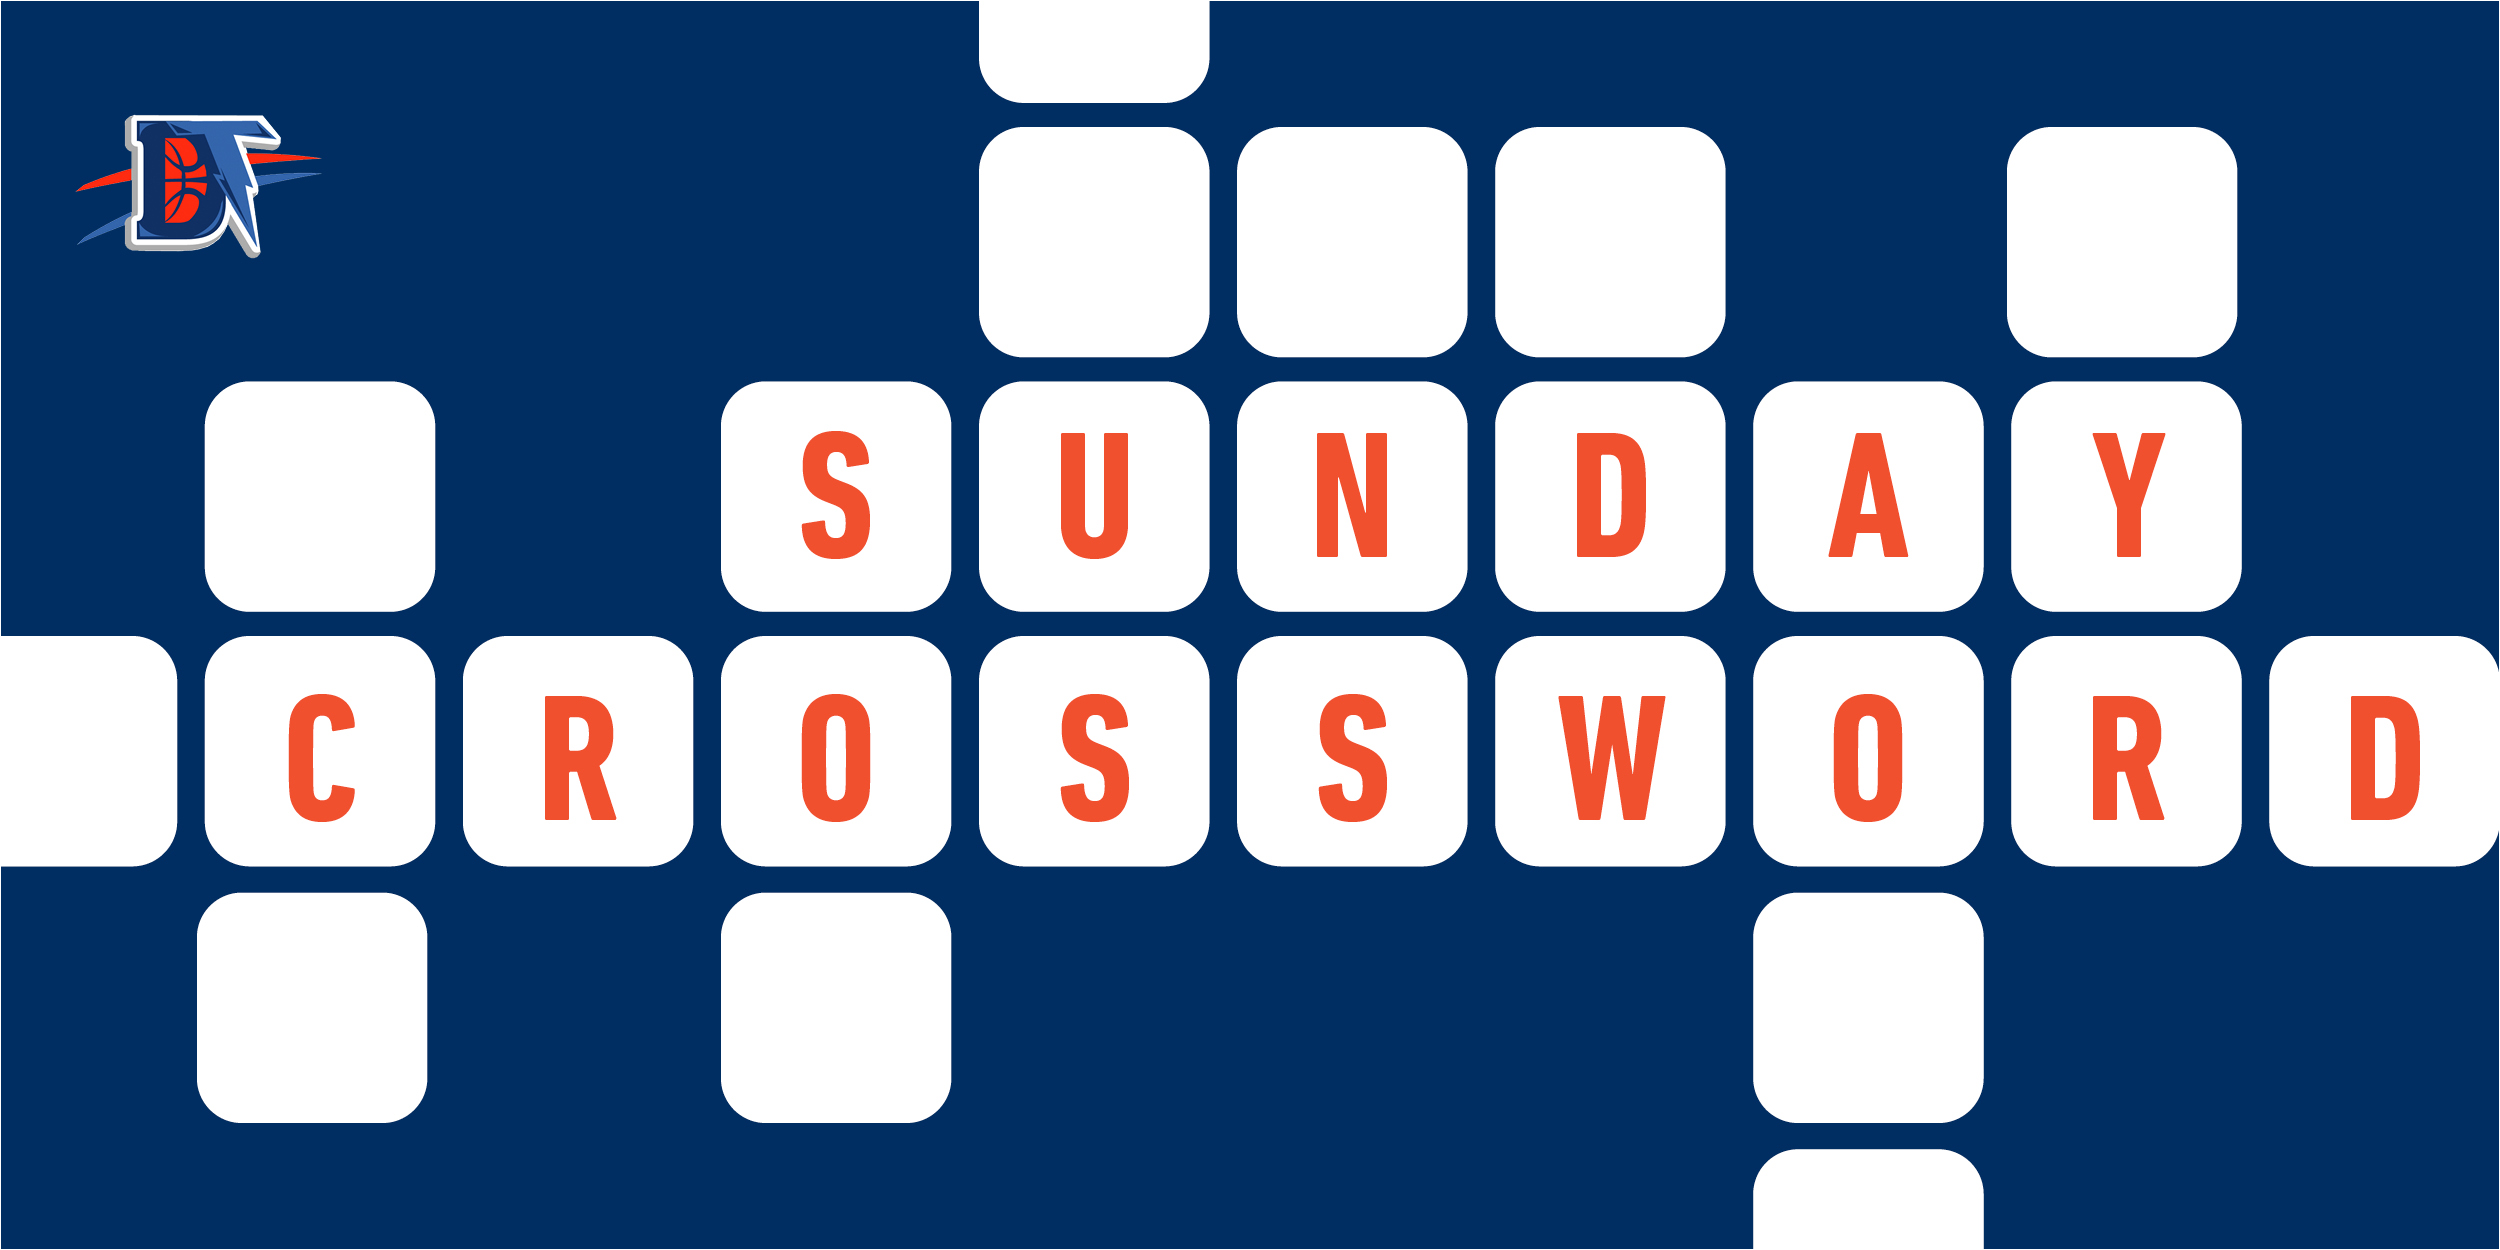 Sunday Crossword: February 28 Mini